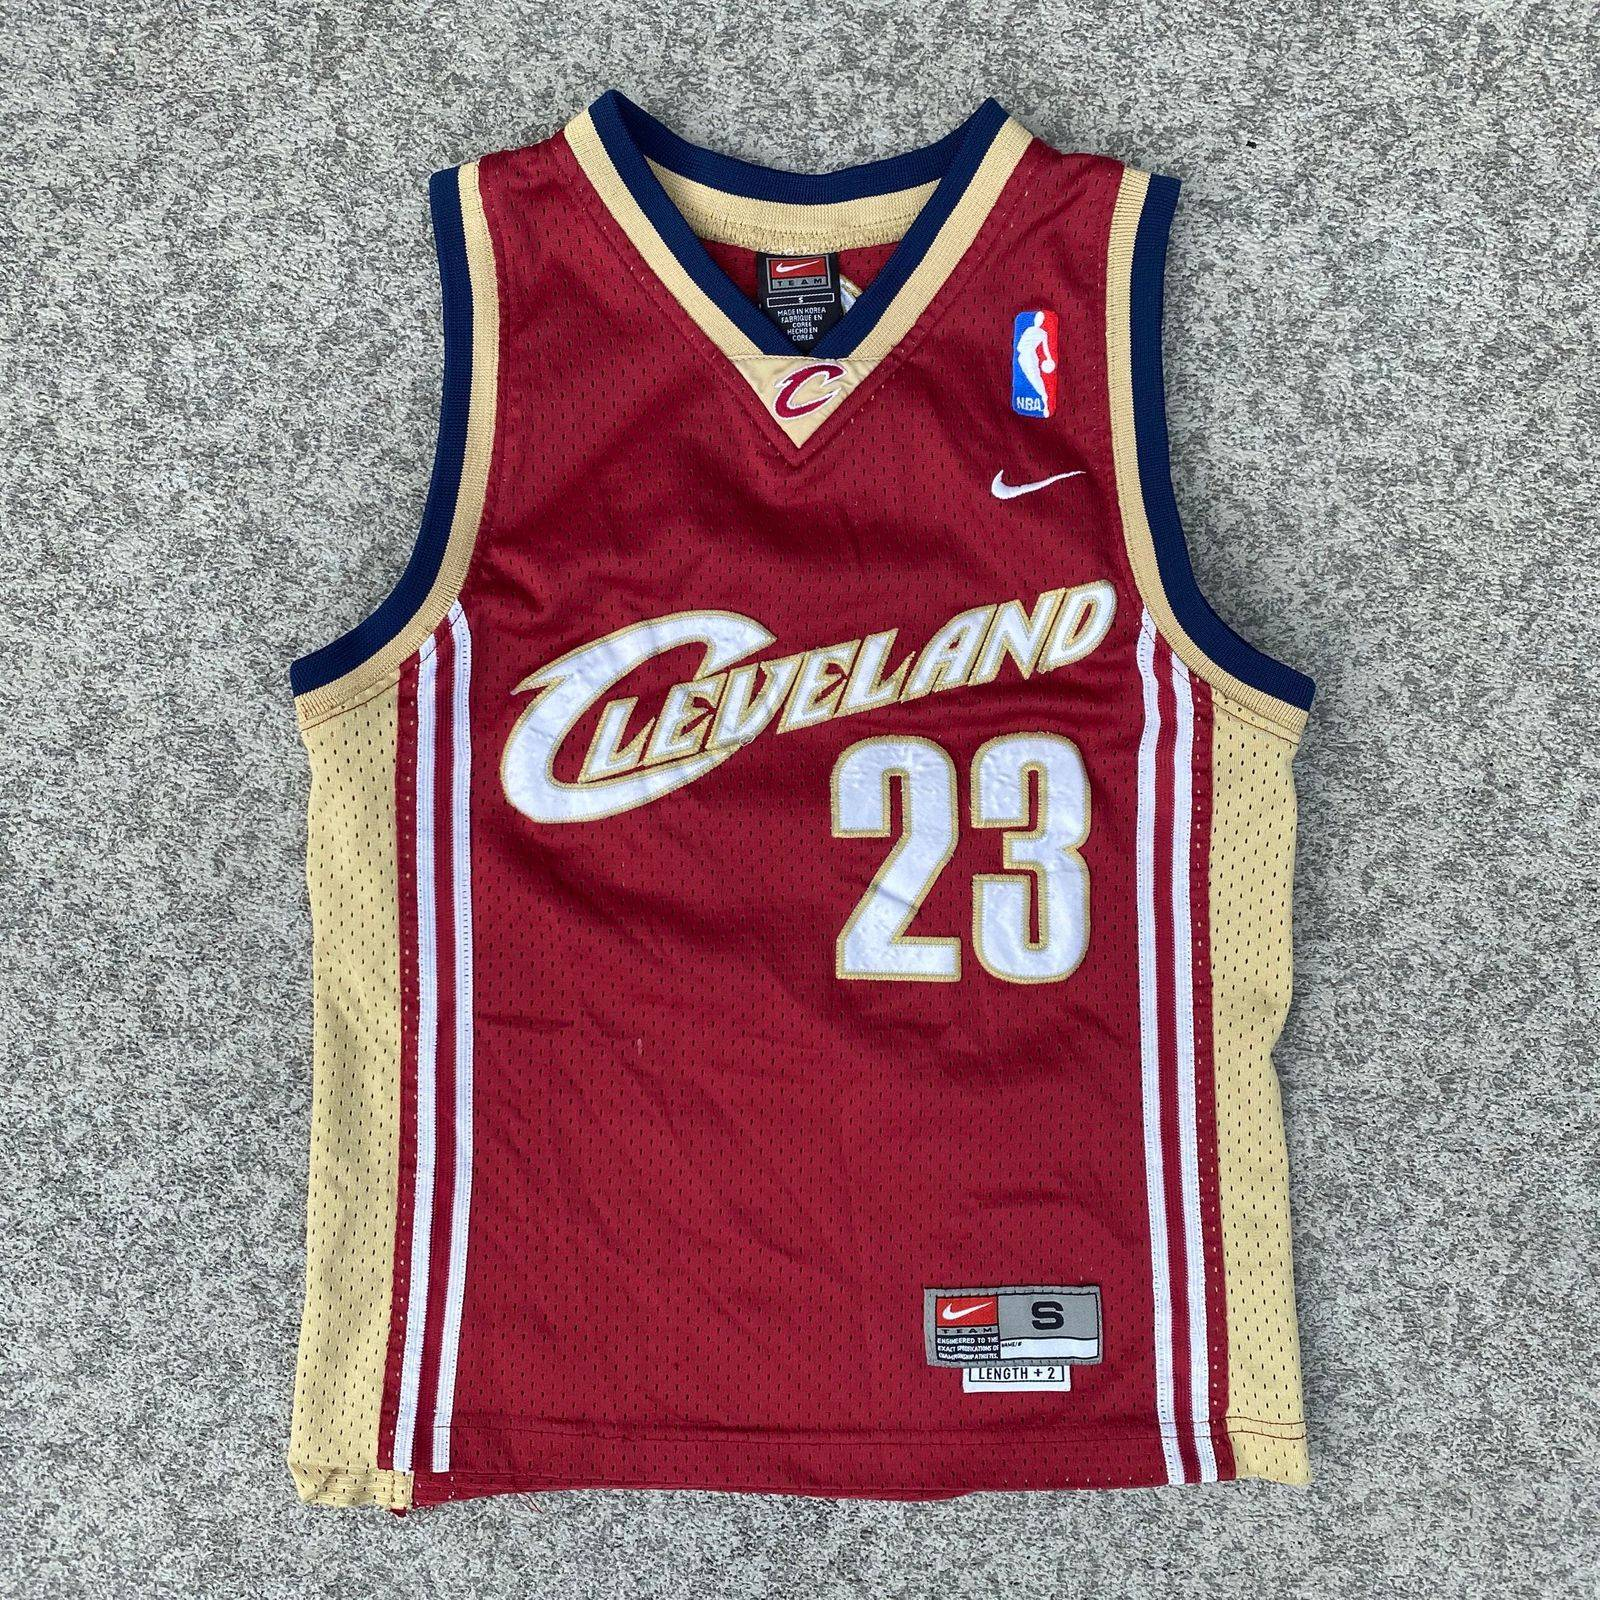 Nike Cavaliers Lebron James Jersey